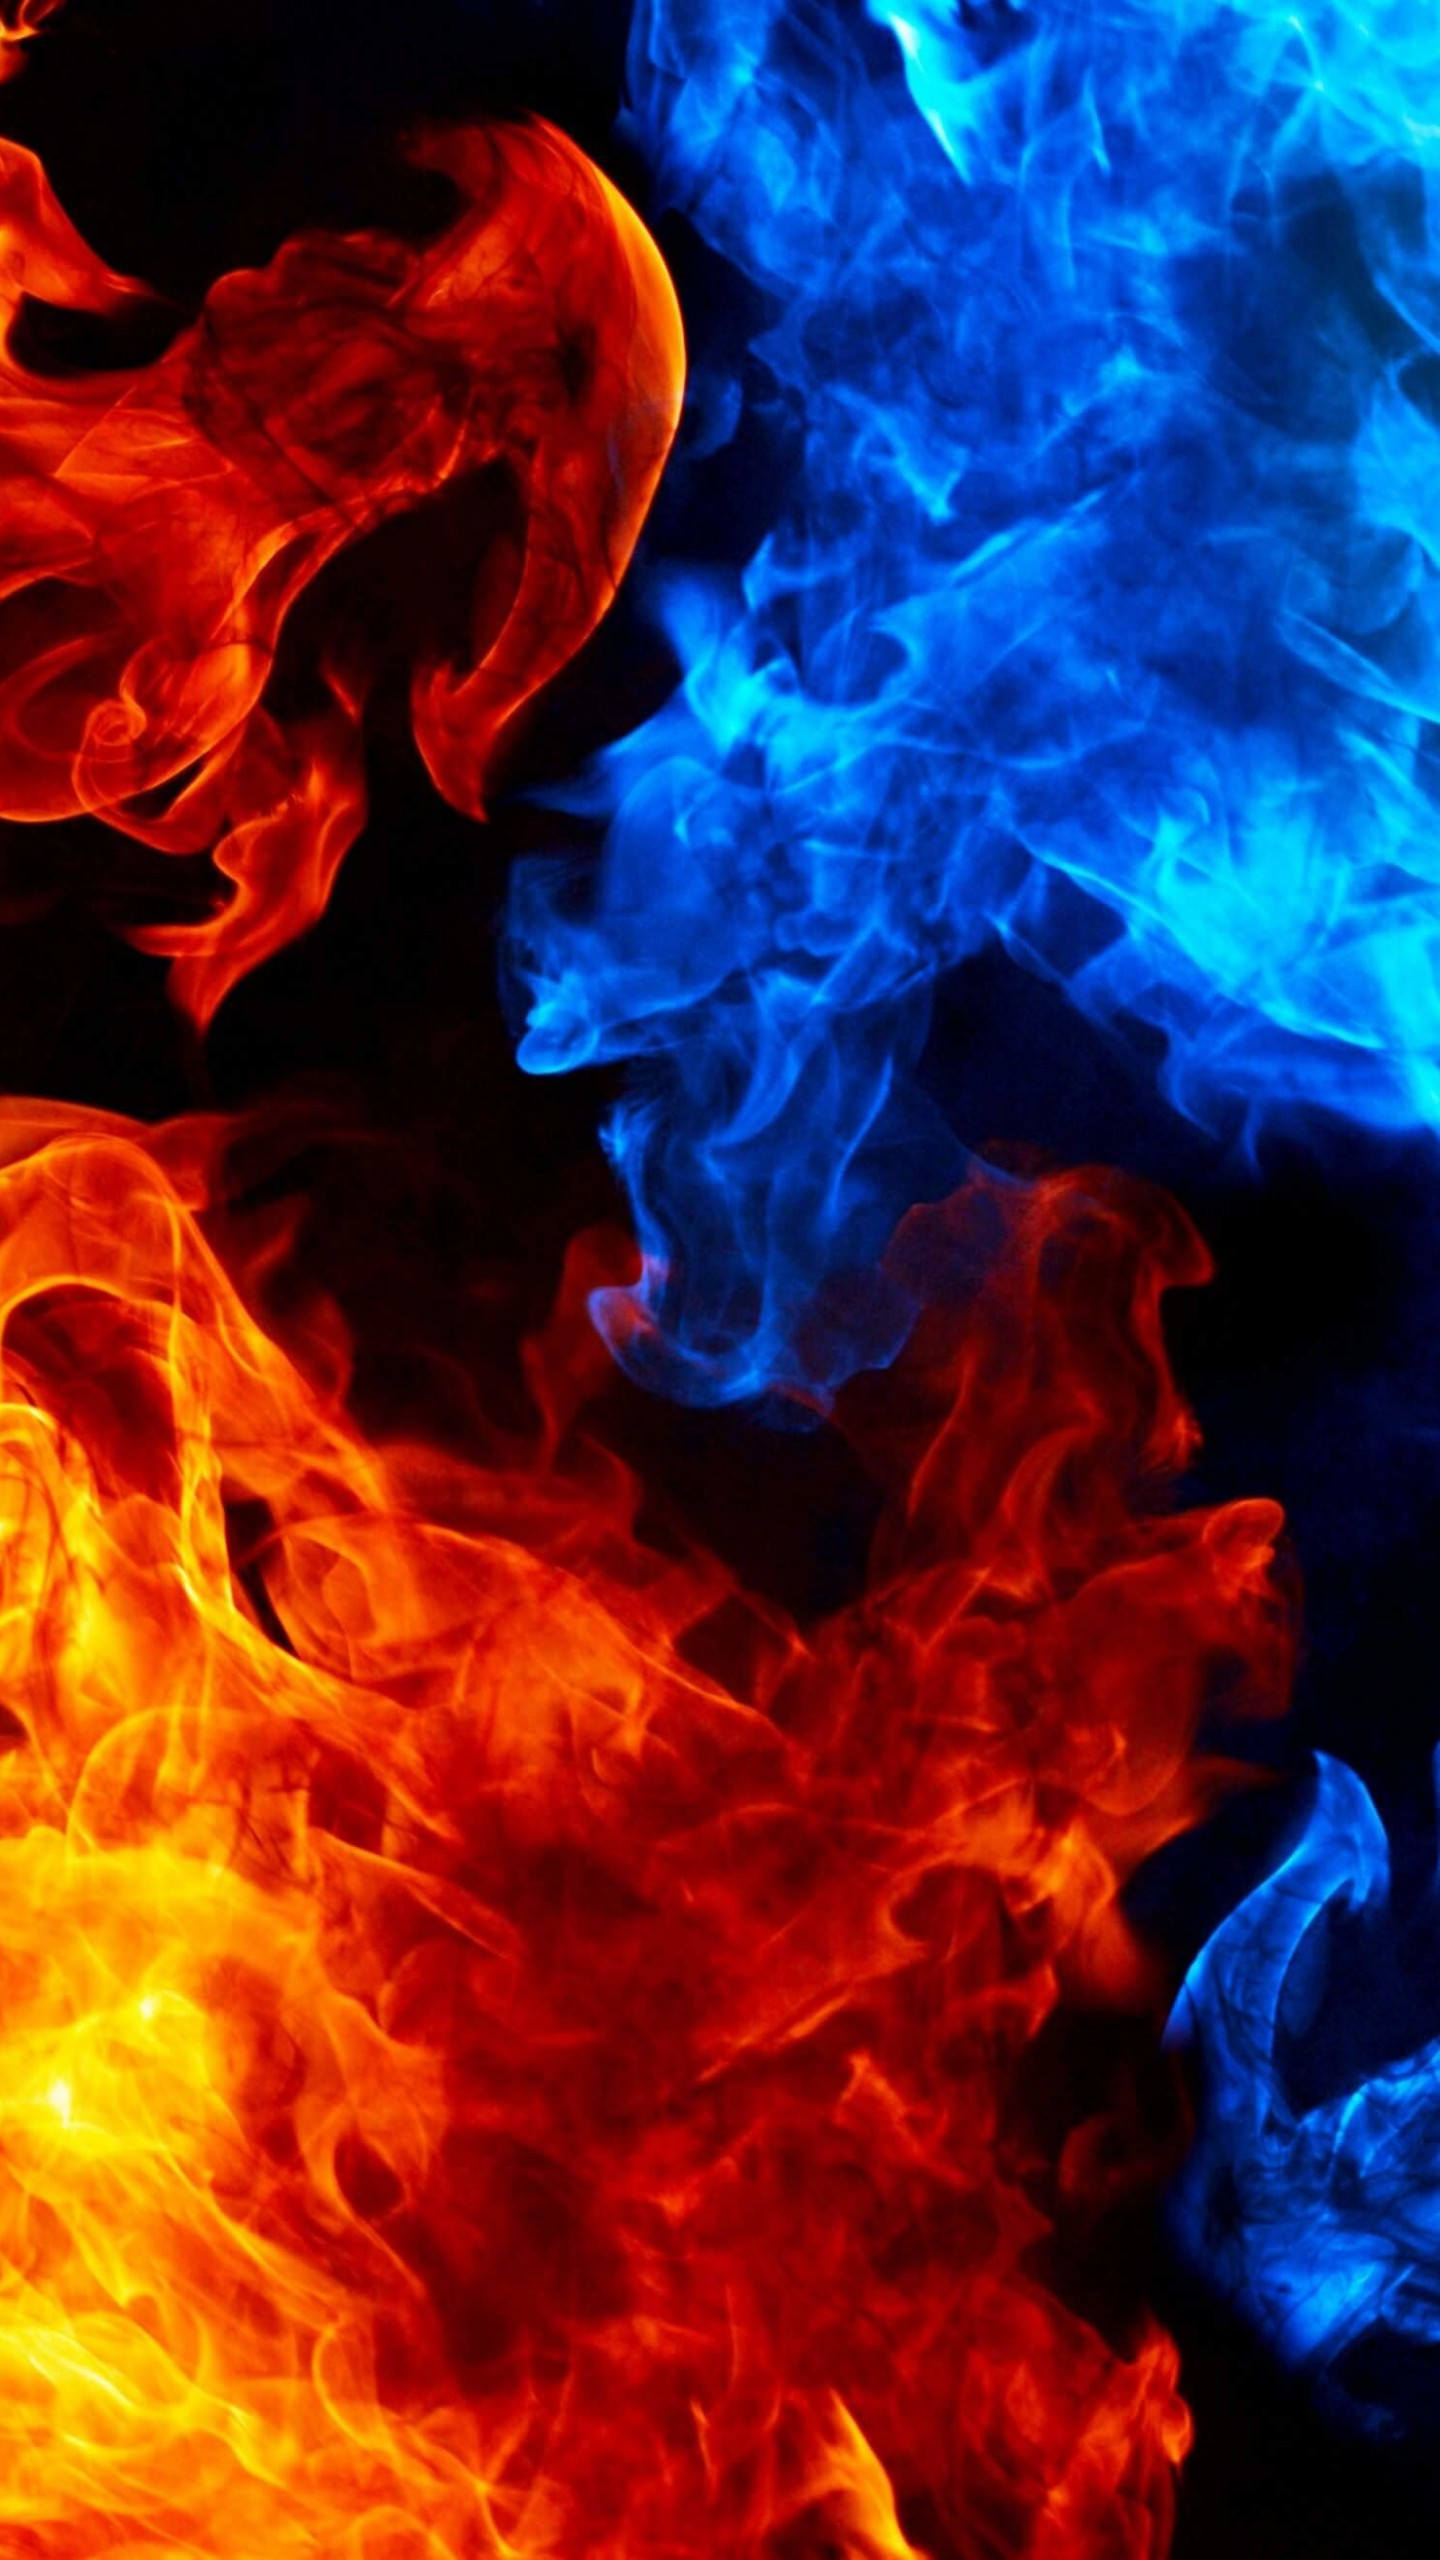 Blue And Red Fire Wallpaper for SAMSUNG Galaxy Note 4